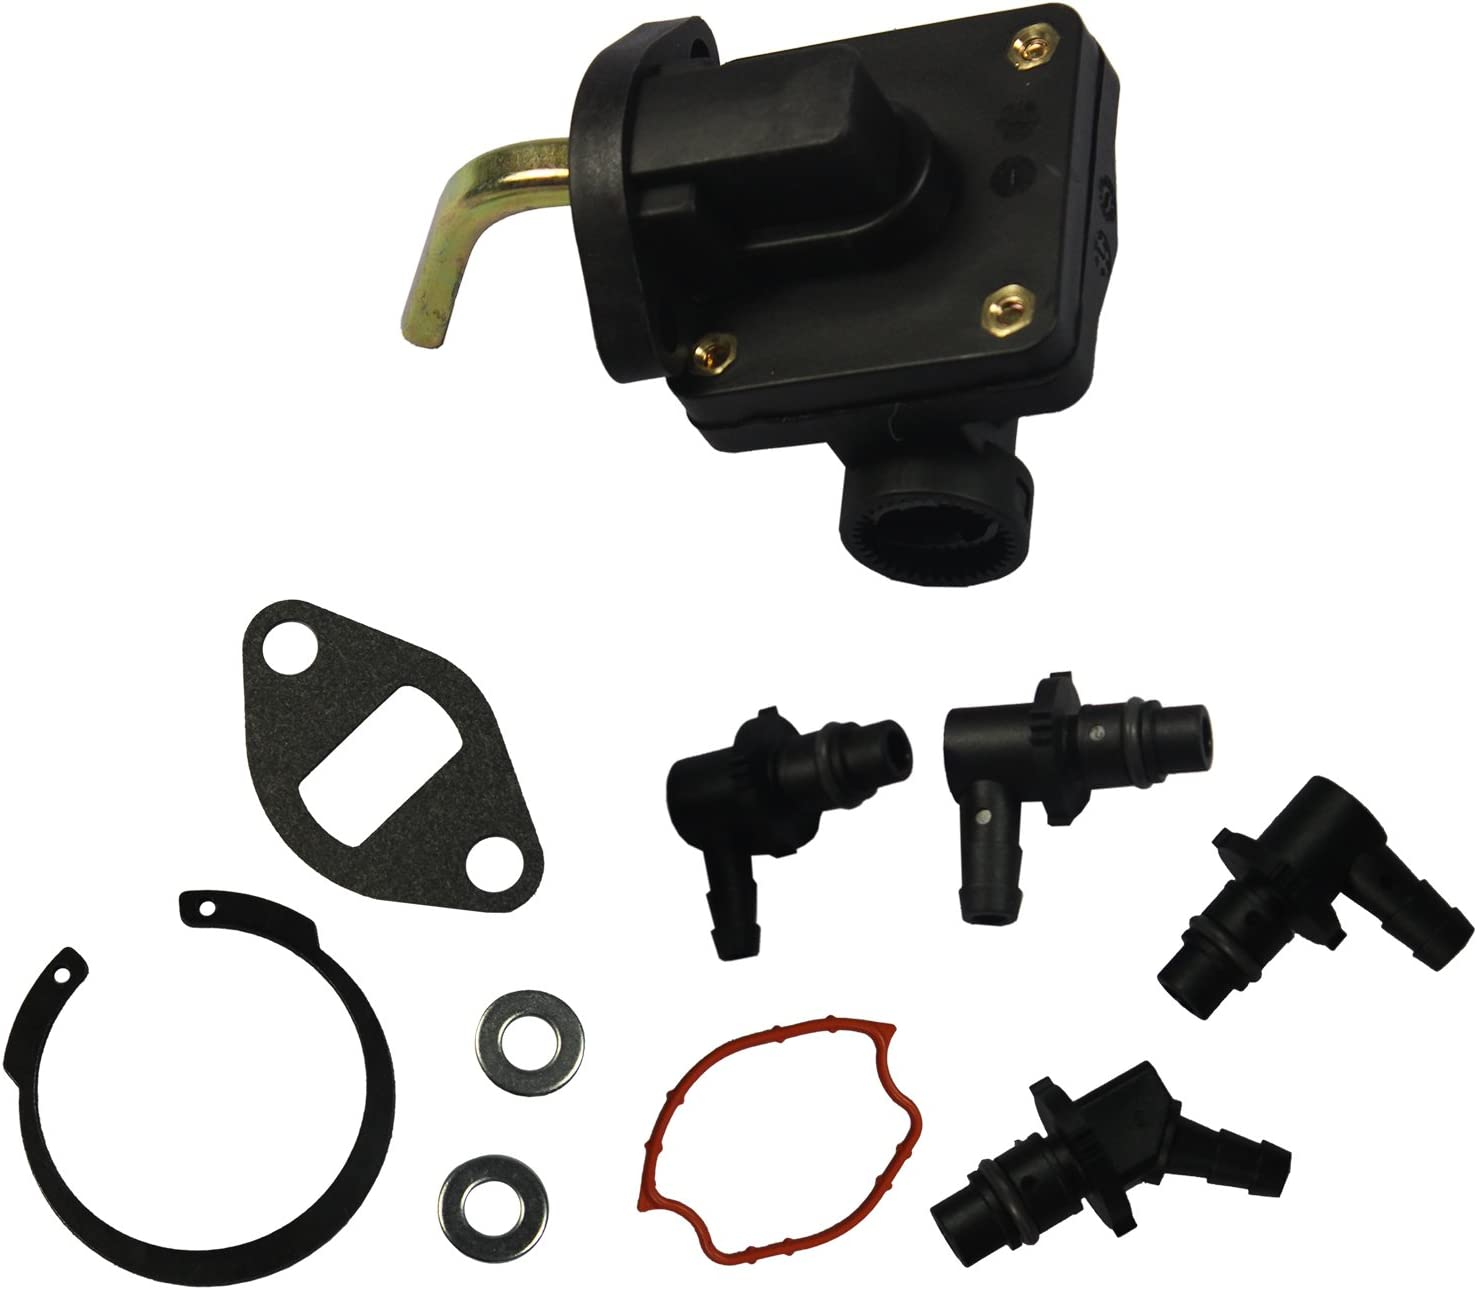 JDMSPEED New Fuel Pump Replacement for Kohler K-Series K241 K301 K321 K341 10 12 14 16 HP Engines